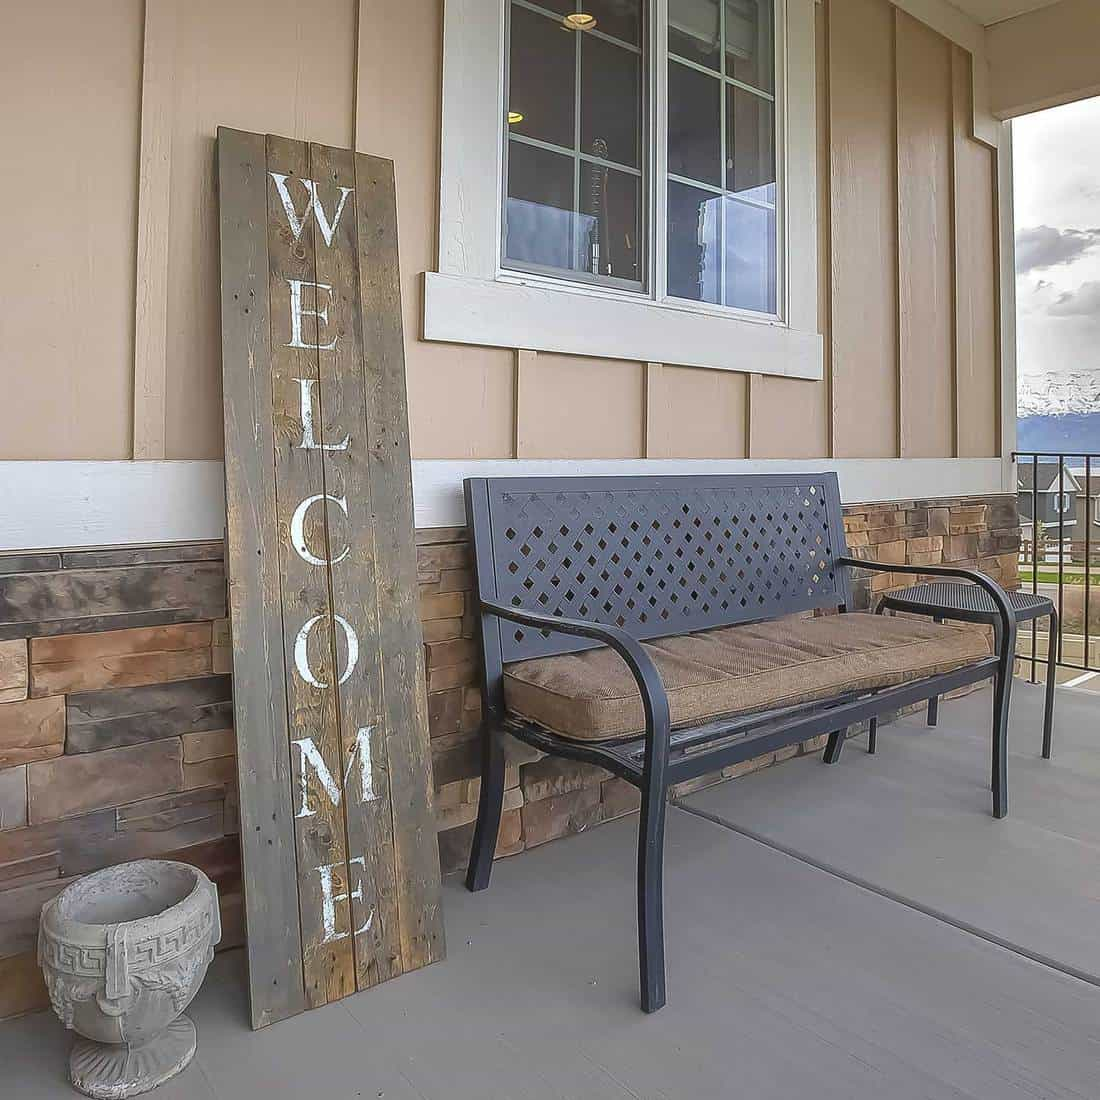 Square wooden welcome sign and furniture on the front porch of a residence with exterior wall made of wooden and stone brick section